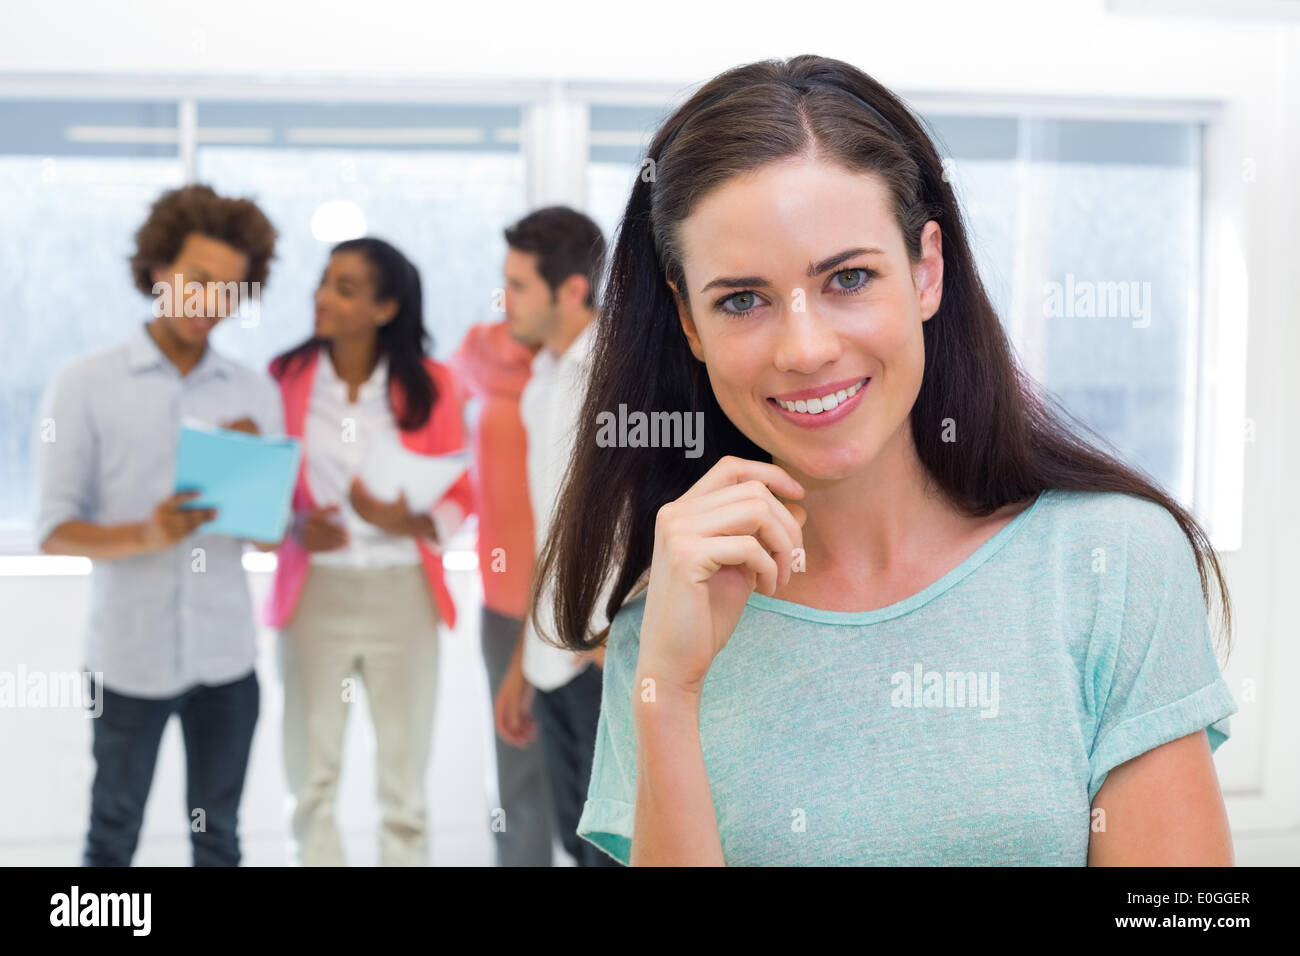 Casual businesswoman smiling at camera - Stock Image